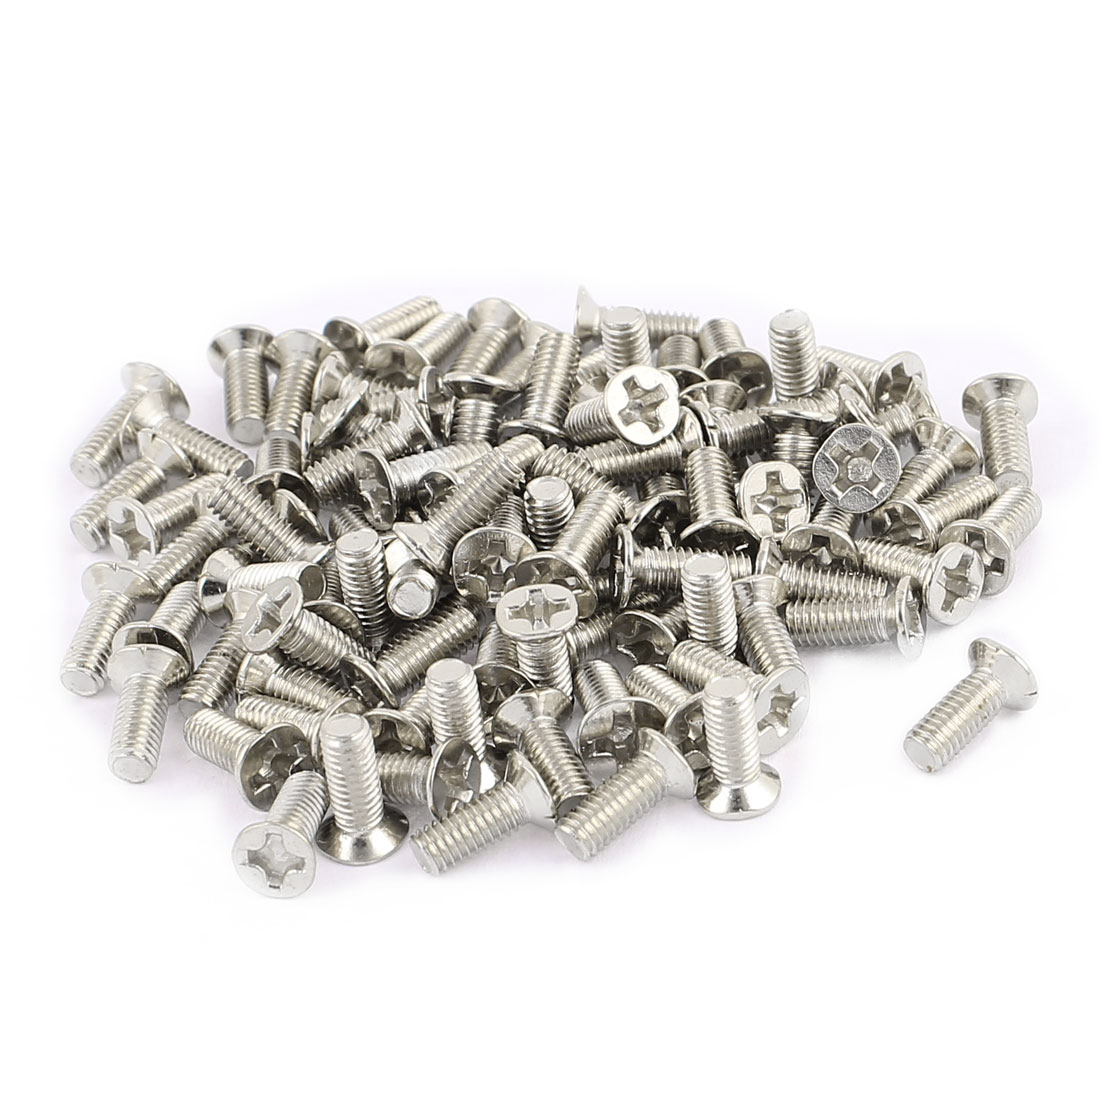 100Pcs M3x8mm 304 Stainless Steel Flat Head Phillips Machine Screws Silver Tone